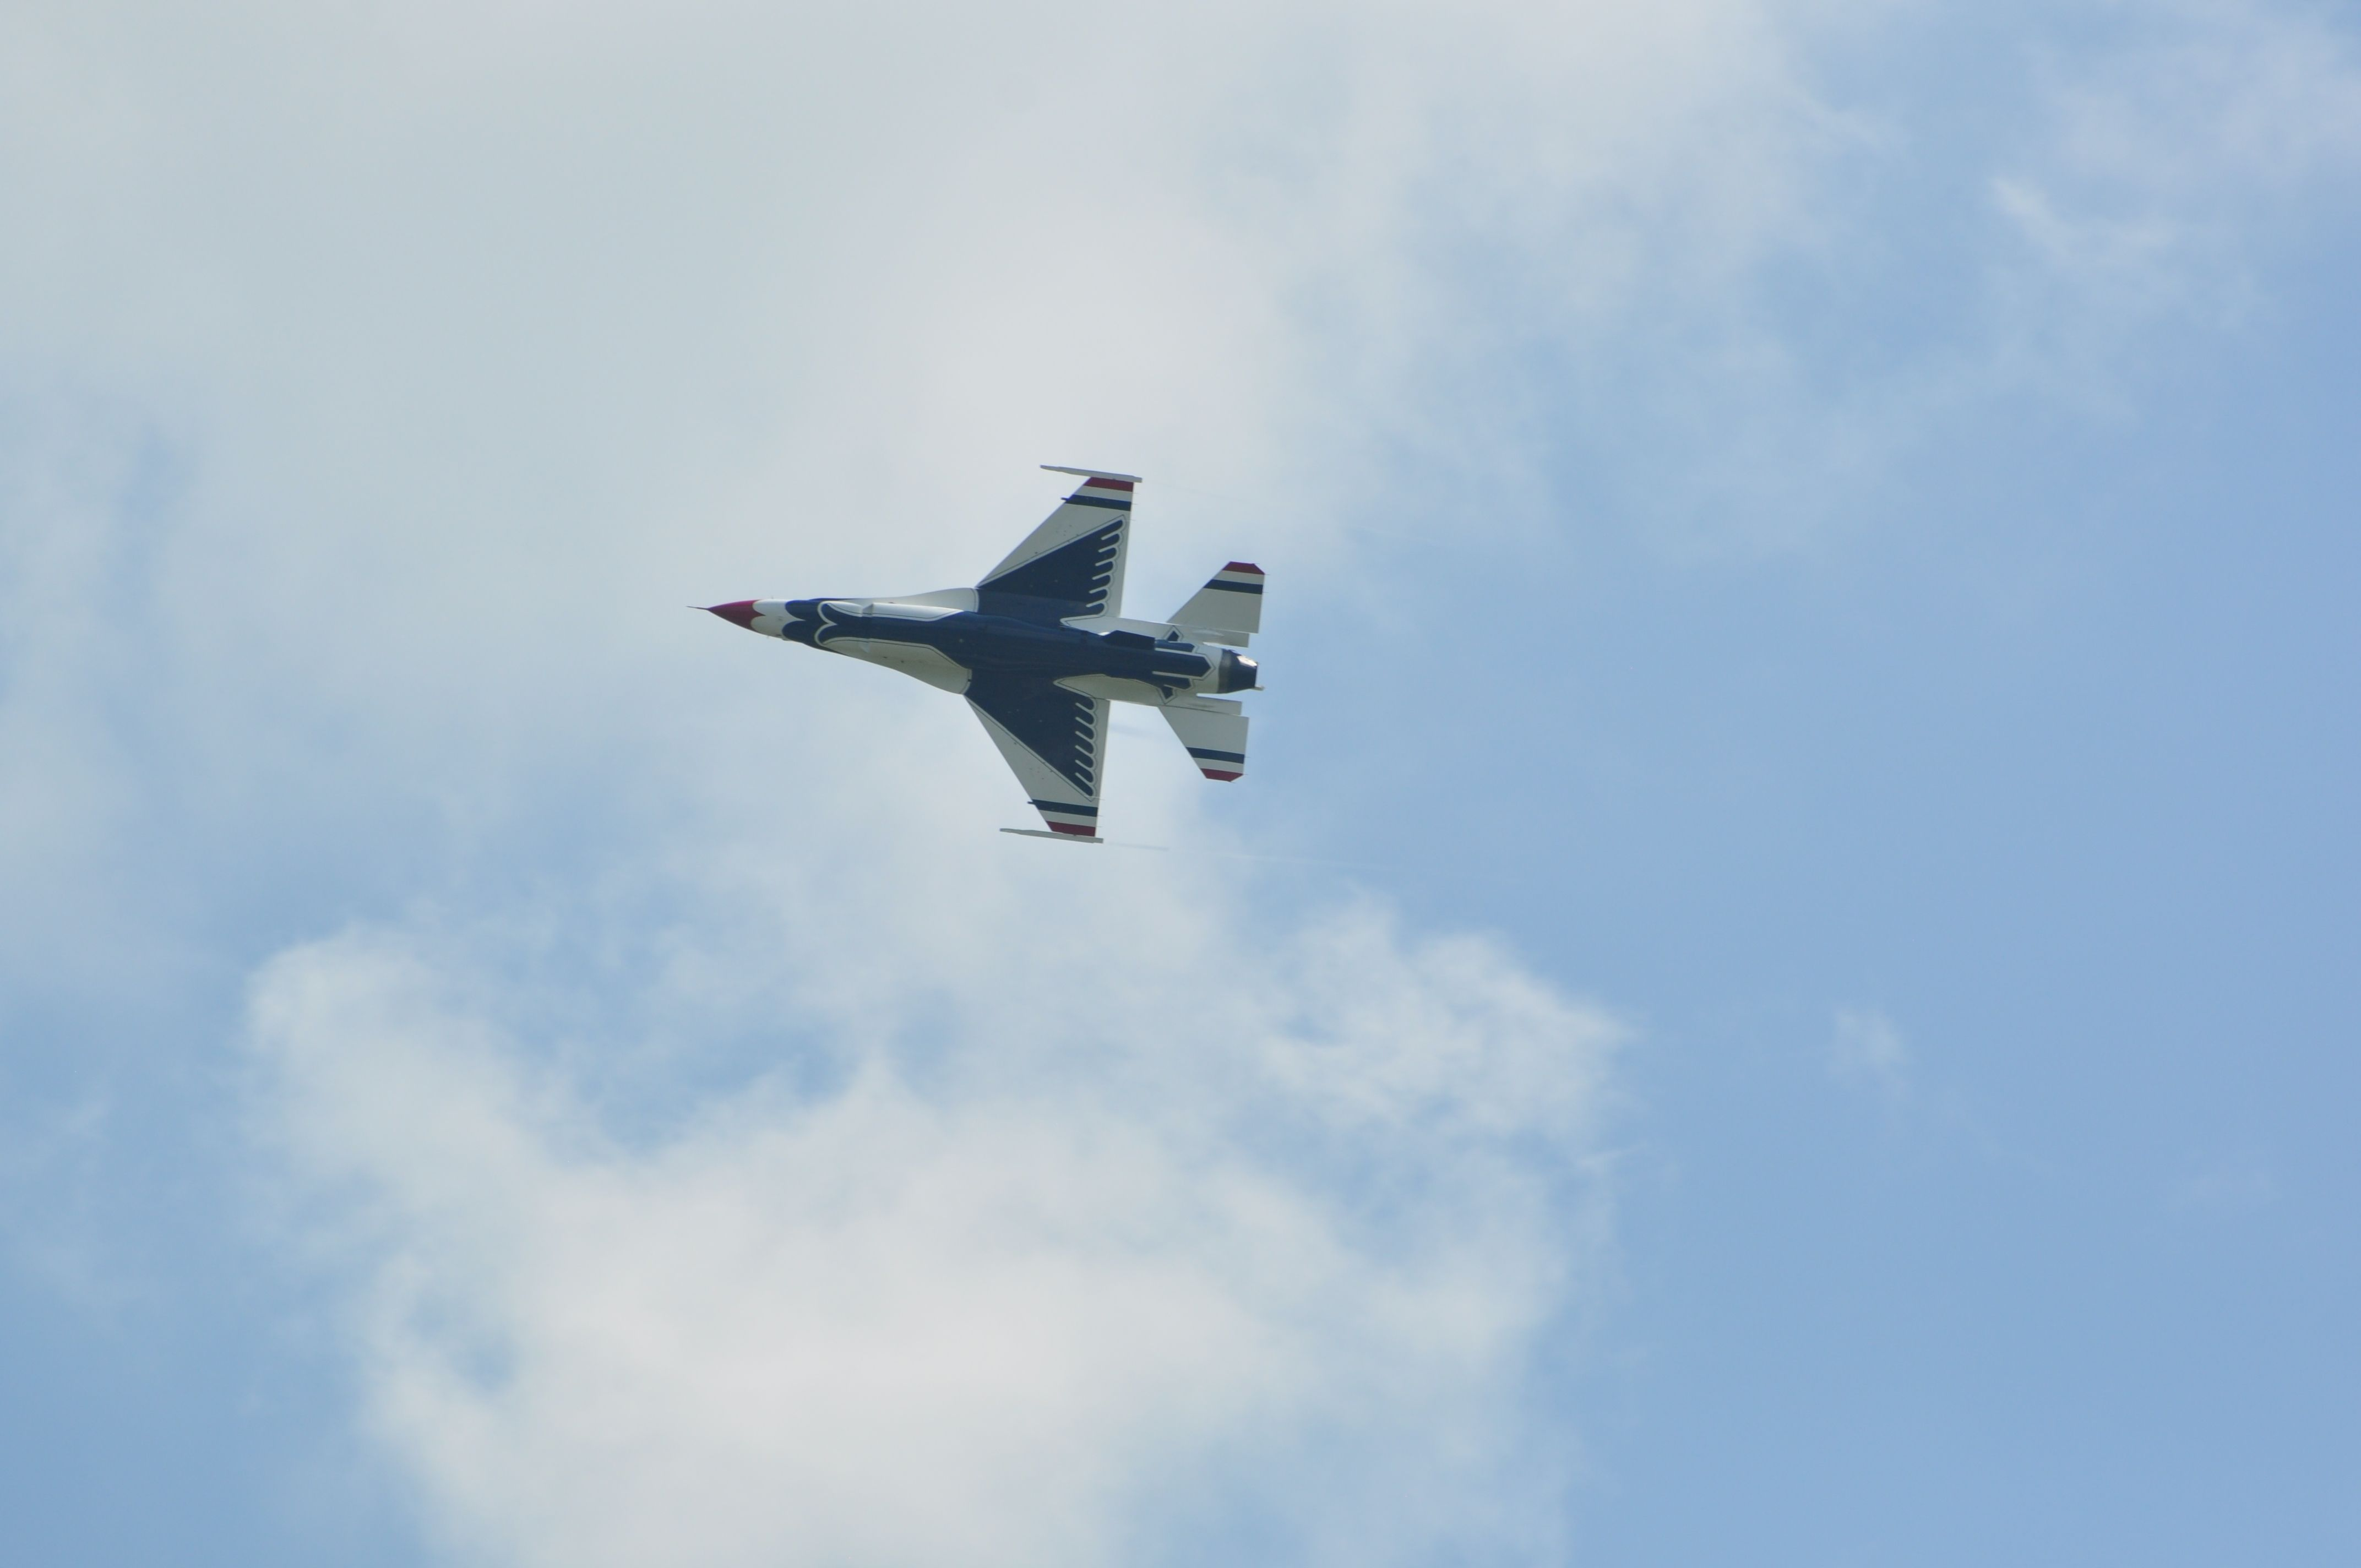 F16 of the Thunderbirds Air show, Westmoreland county